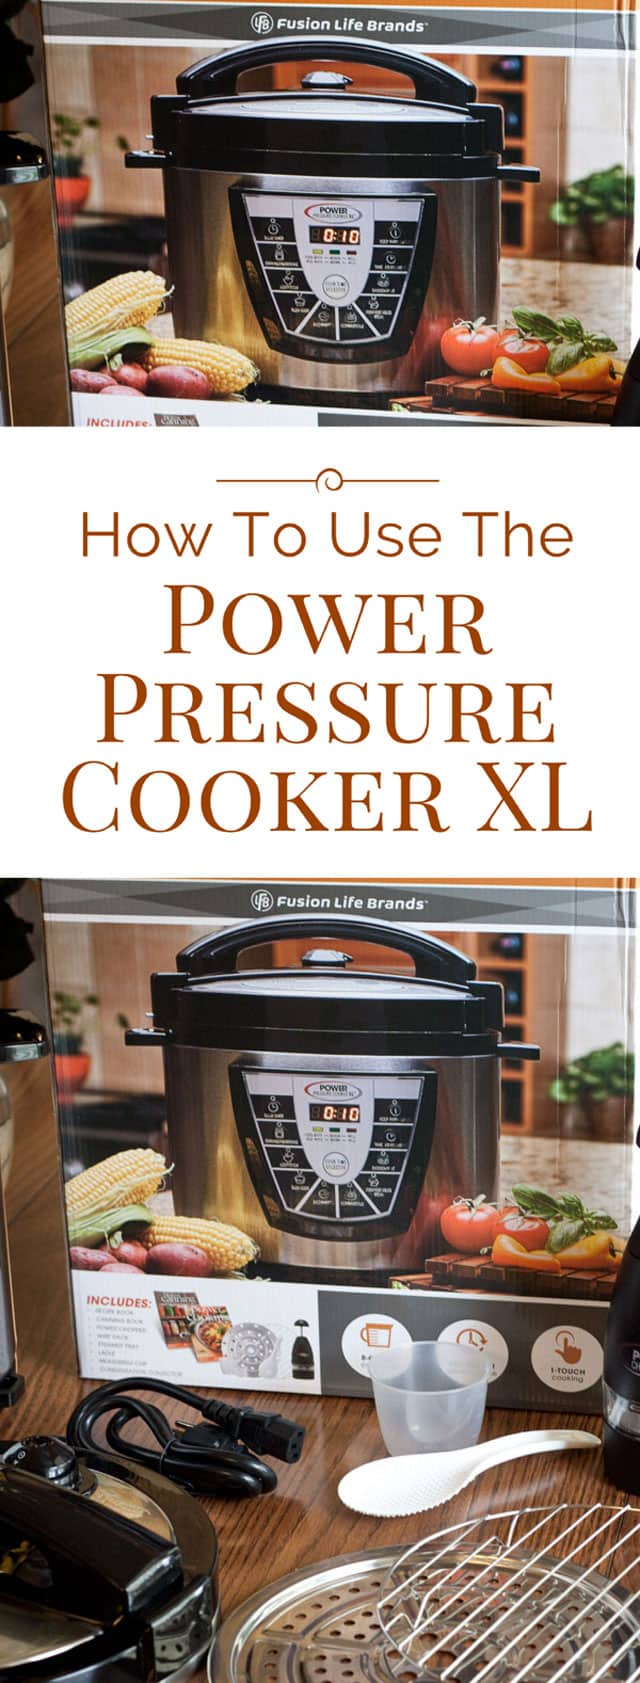 The Power Pressure Cooker XL is one of the best selling electric pressure cookers. Here\'s everything you need to know about how to use the Power Pressure Cooker XL